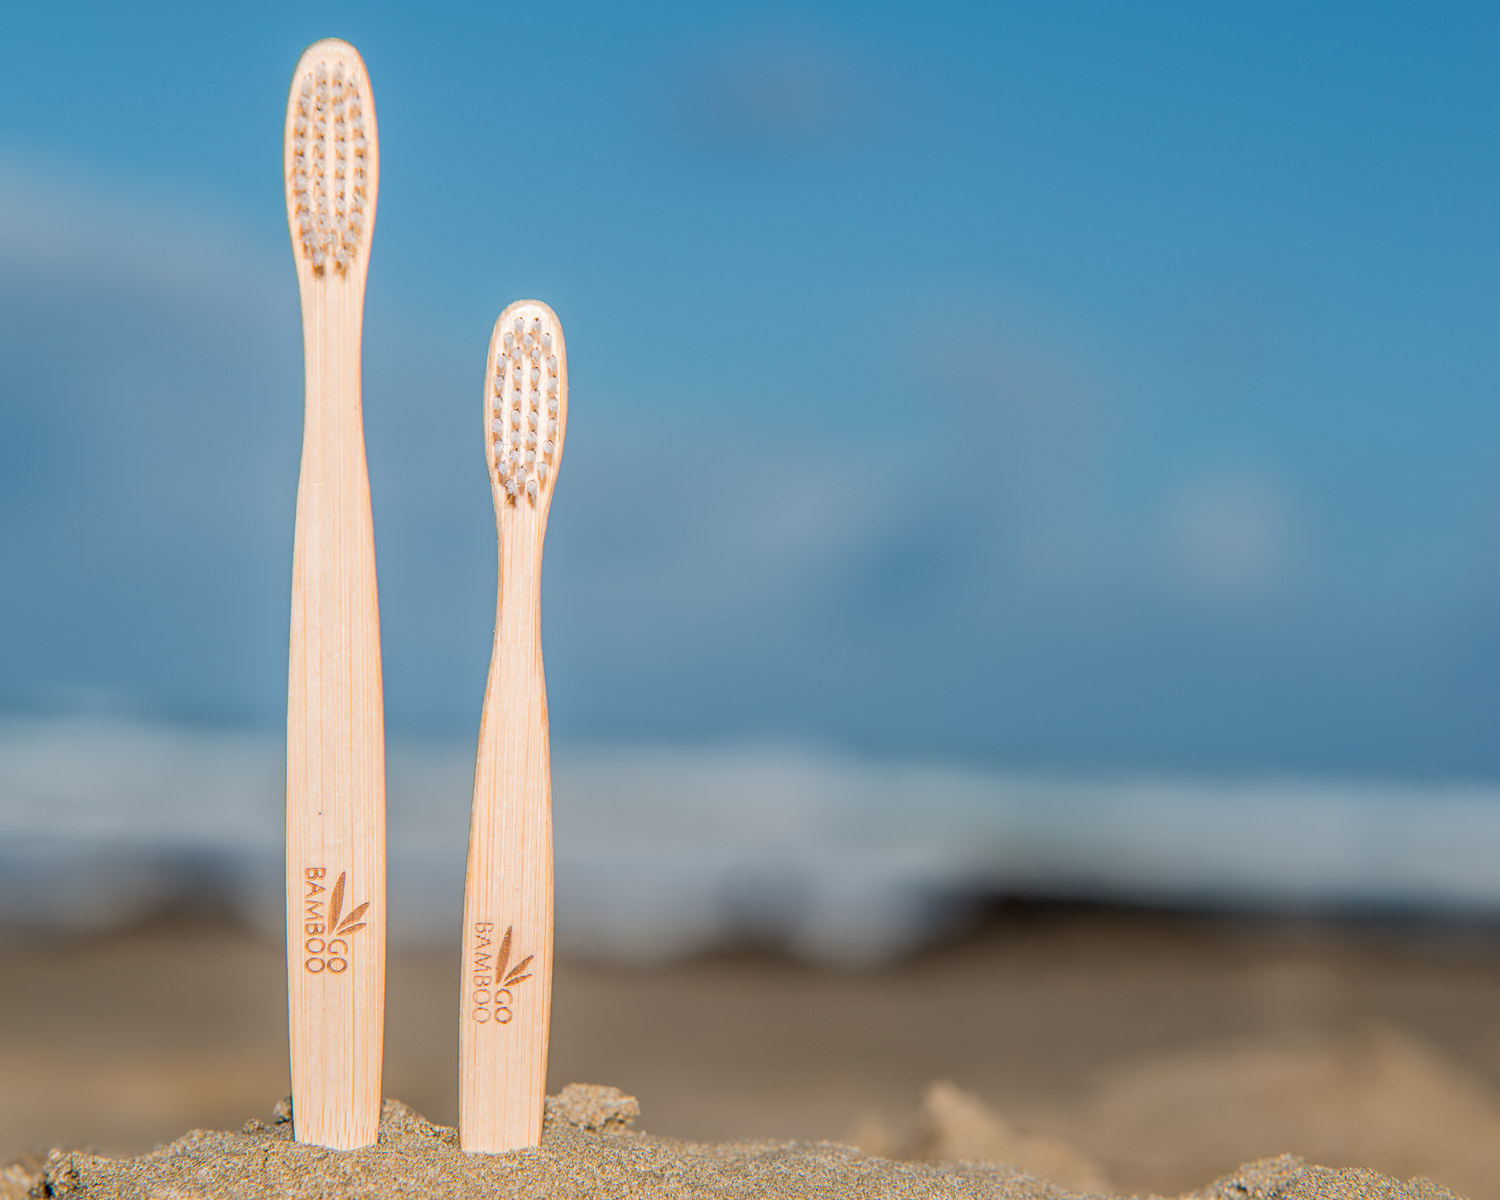 Bamboo toothbrushes from Go Bamboo